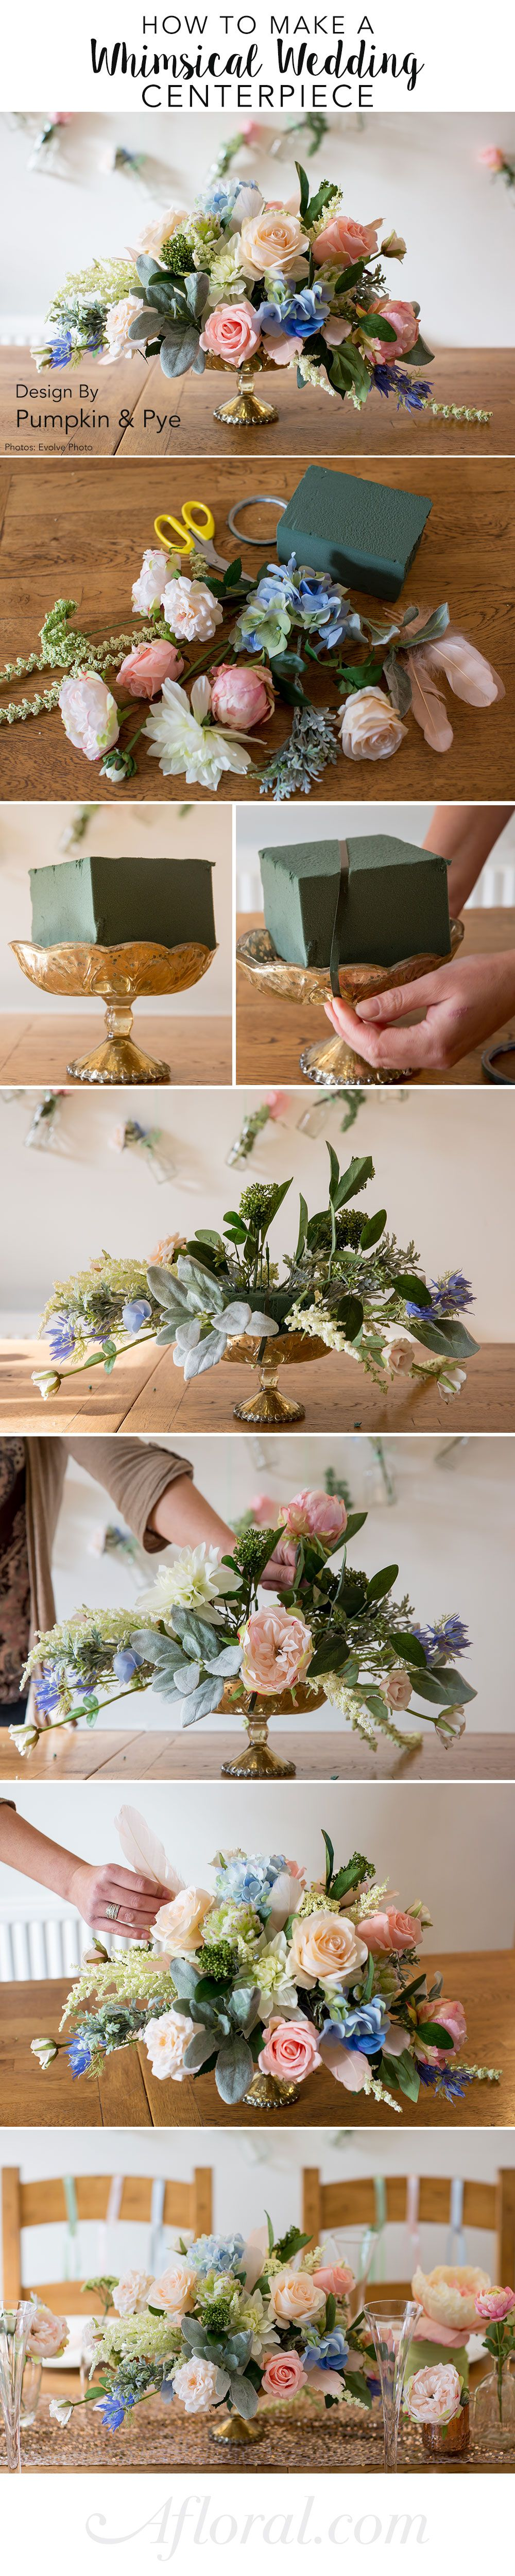 How to diy whimsical wedding centerpiece diy wedding centerpieces learn how to make this beautiful centerpiece for your diy wedding can you believe these are silk flowers fauxreal design by pumpkin and pye photos by izmirmasajfo